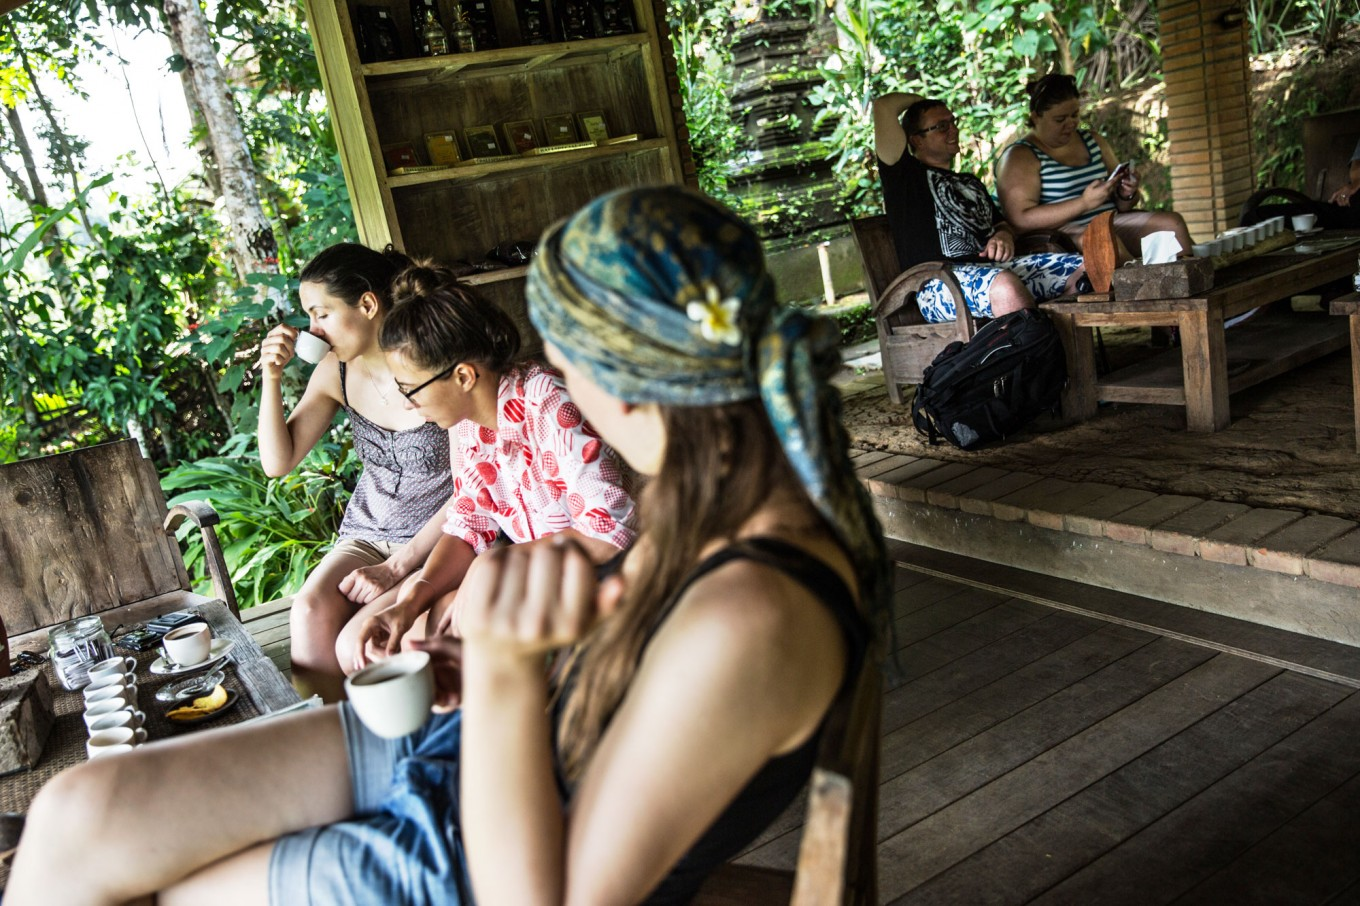 Tourists enjoy the beautiful scenery of coffee trees at the Bali Pulina agrotourism center in Tegalalang, Bali. JP/Agung Parameswara